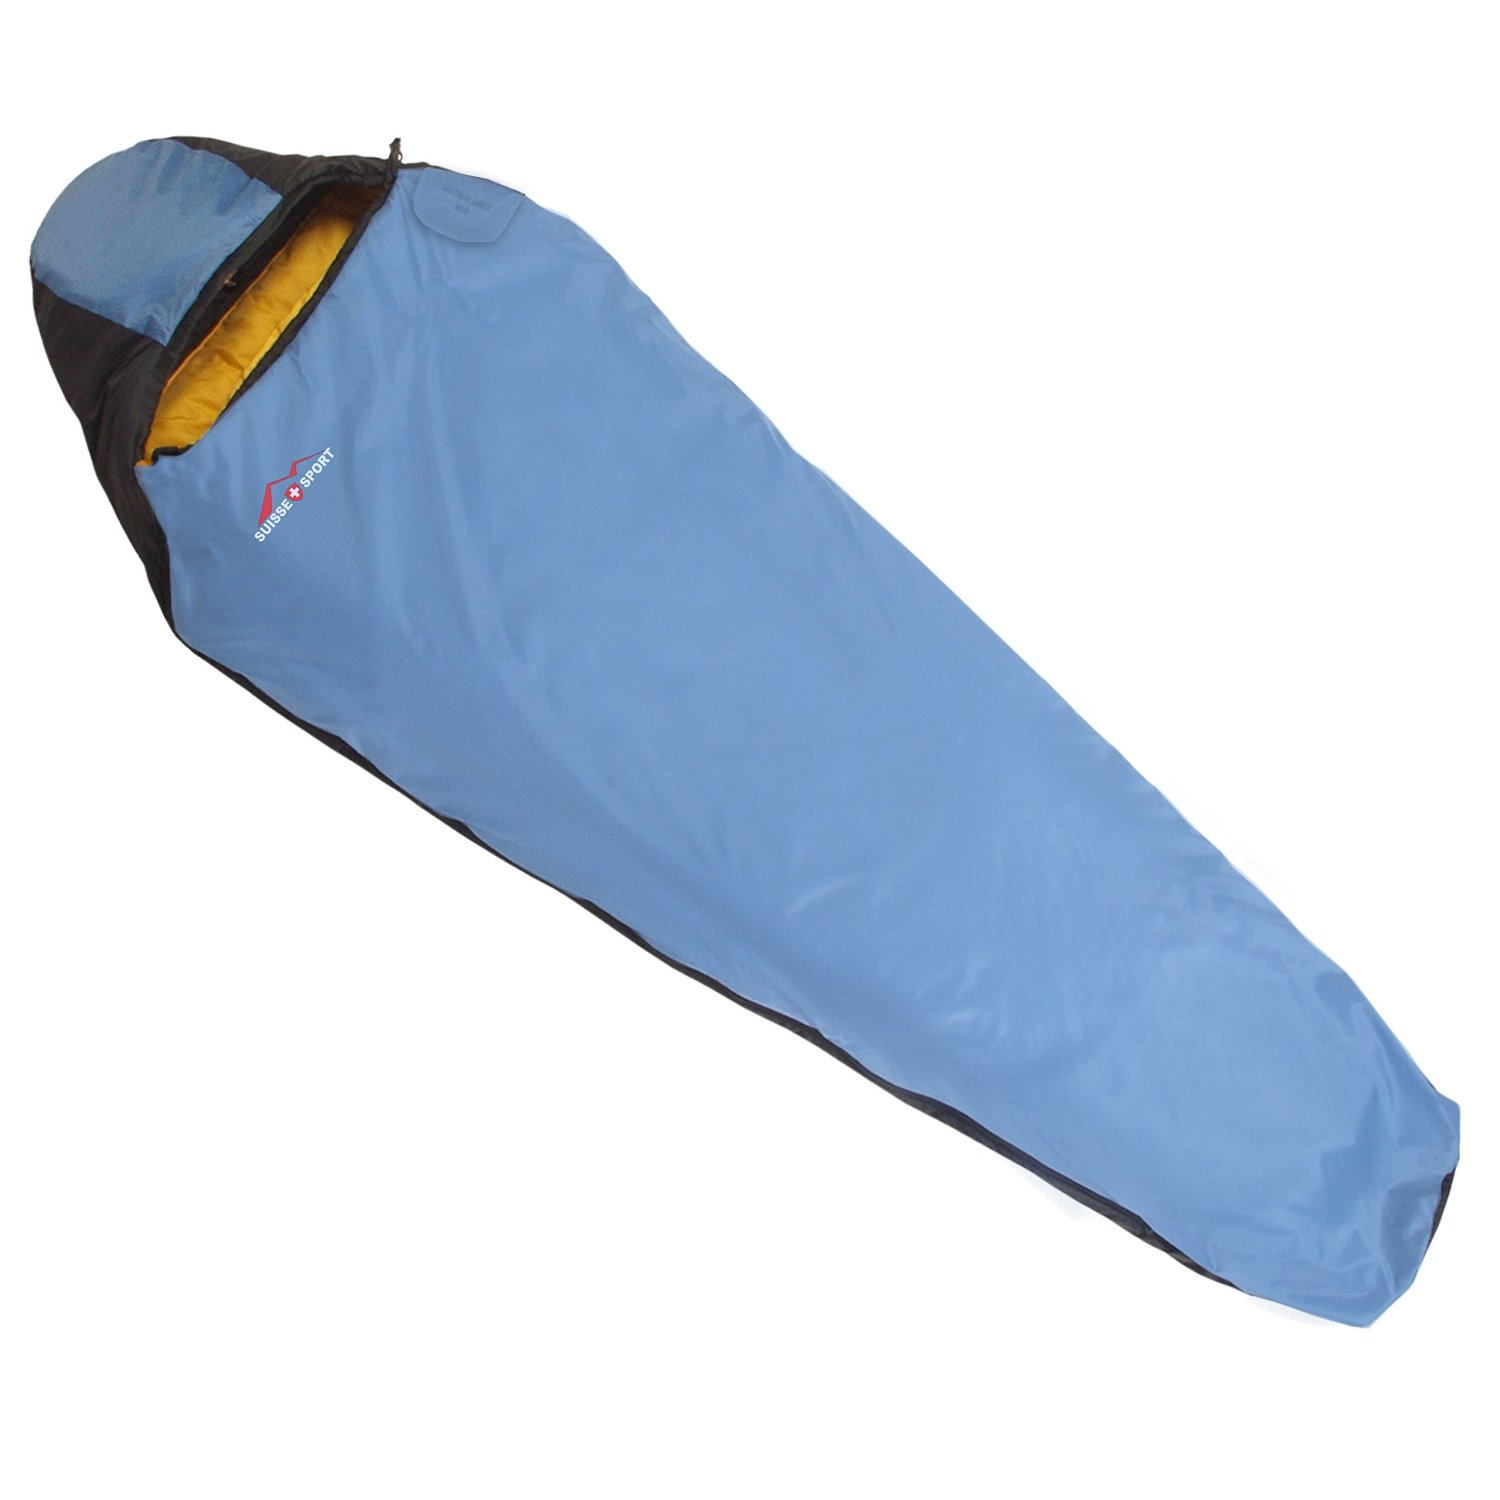 waterproof sleeping bags